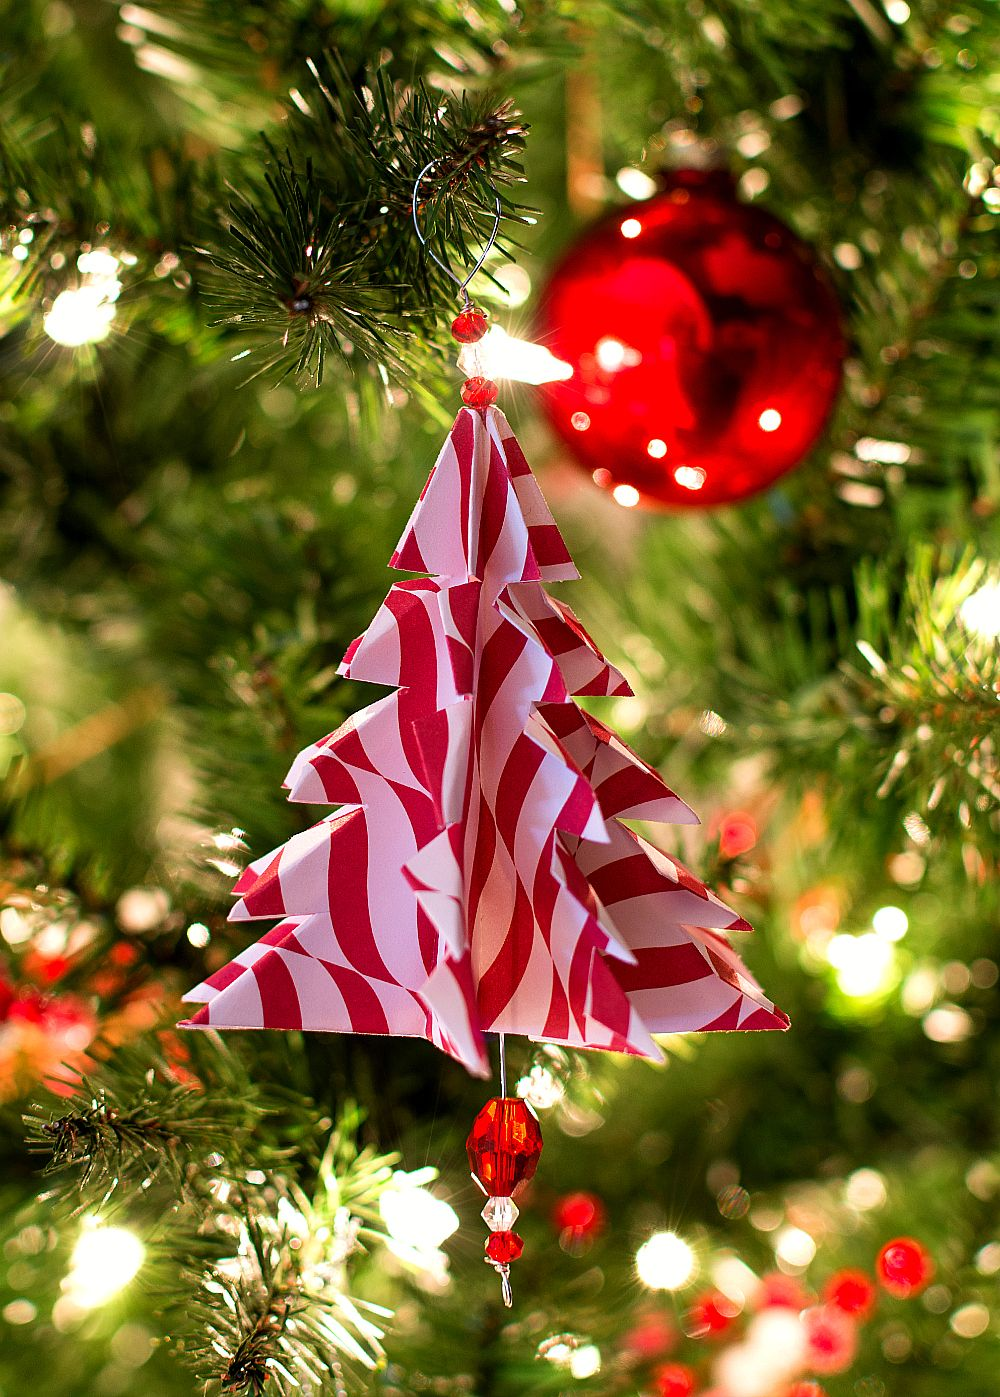 Handmade christmas tree ornaments ideas - Christmas Craft Ideas Handmade Ornament With Paper Origami Tree